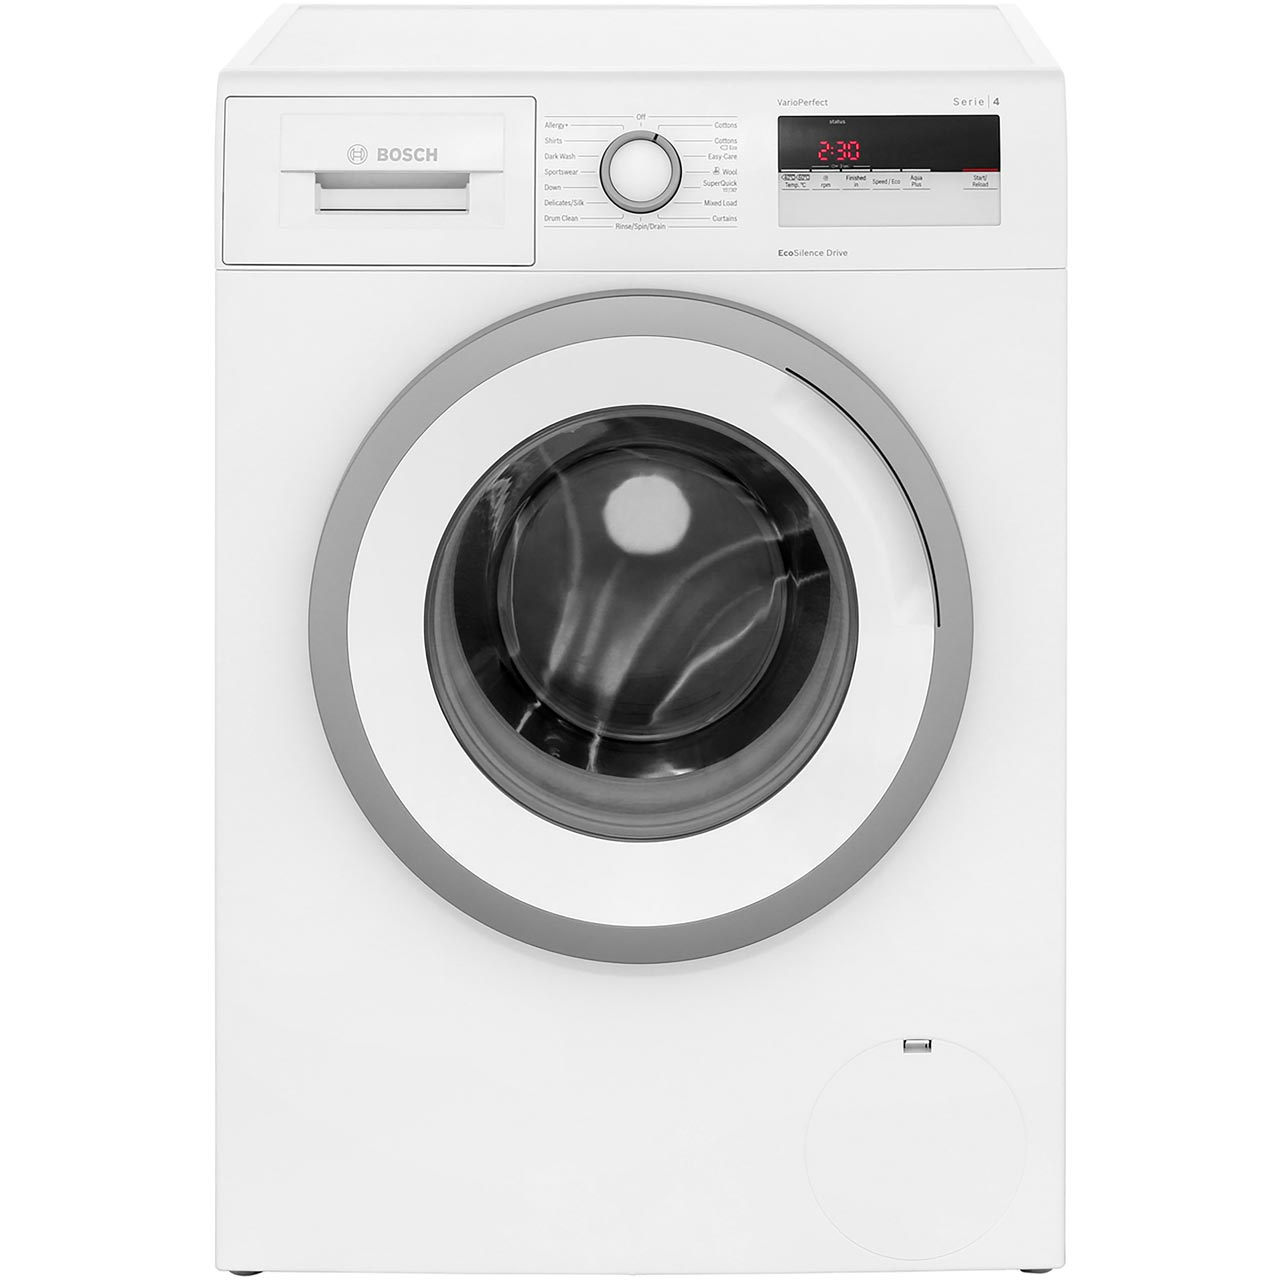 Bosch washing machine: reviews of buyers and experts 75